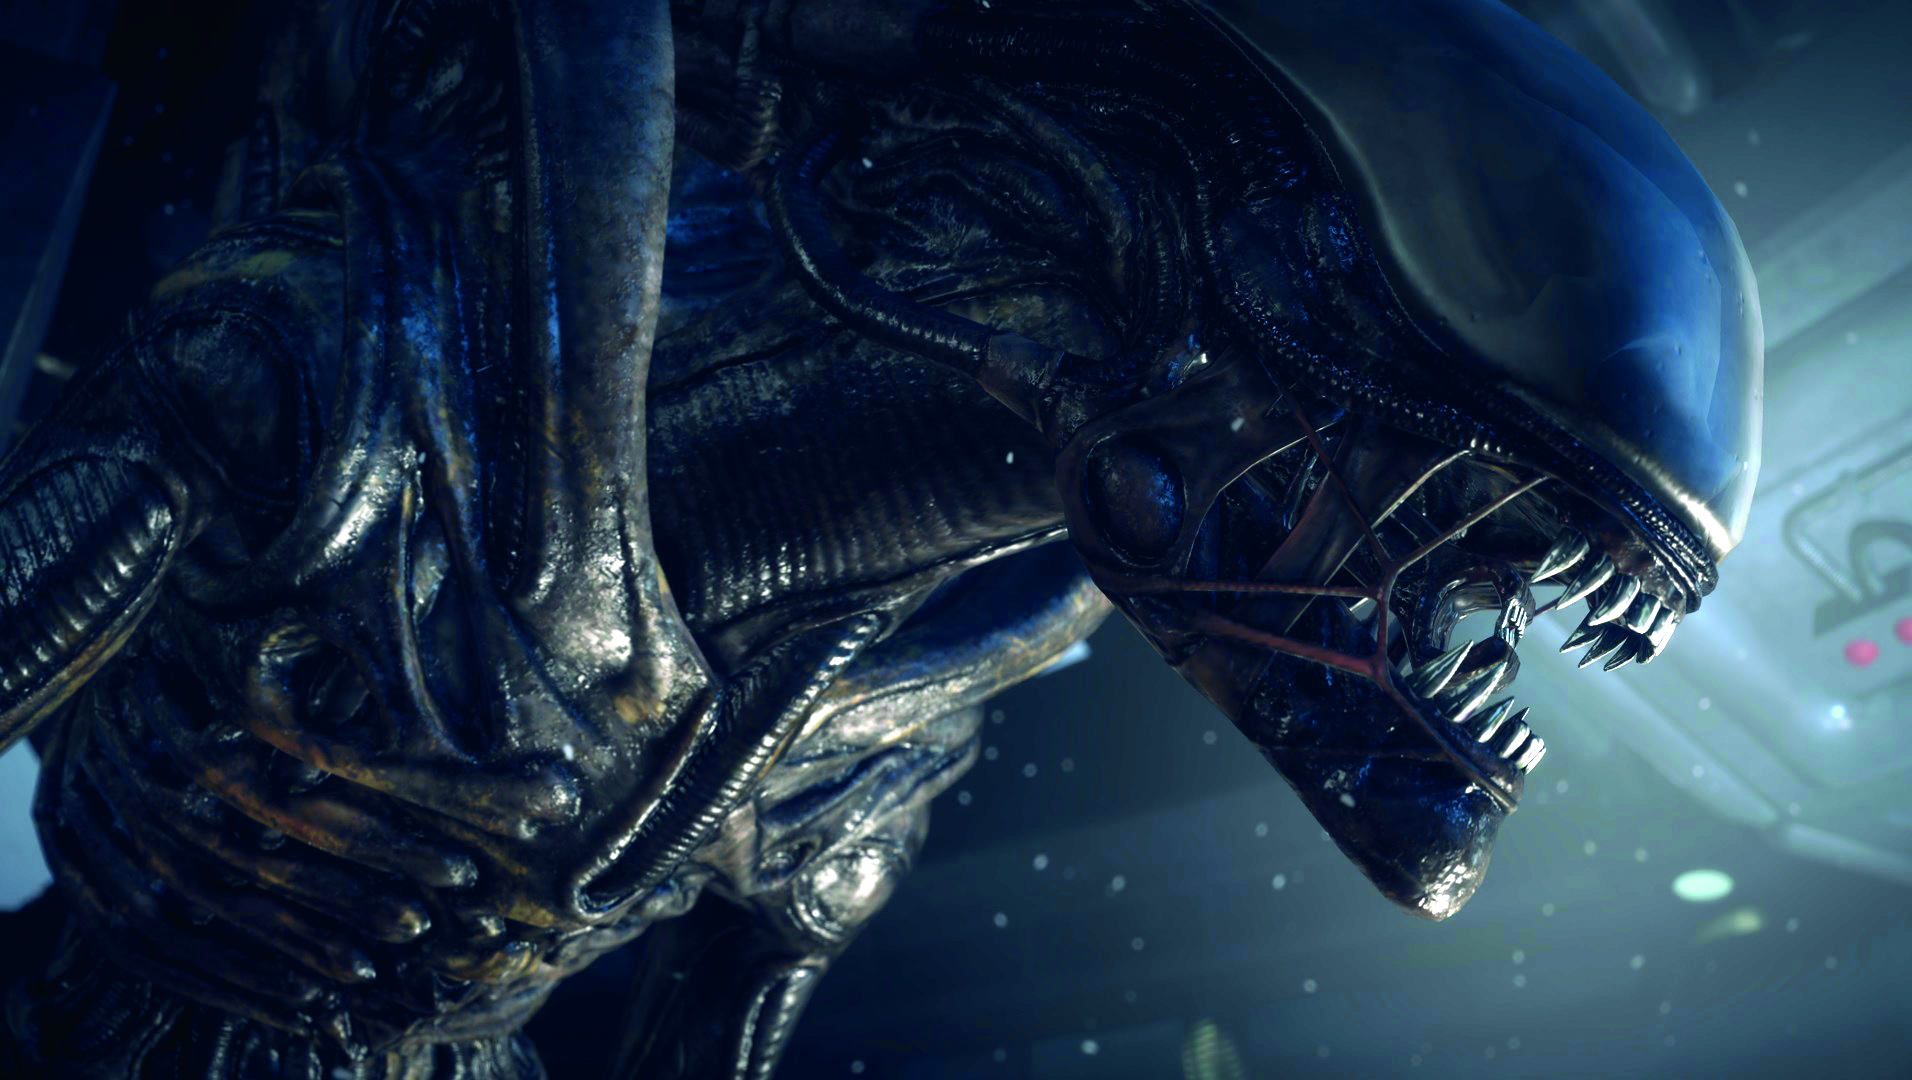 Great moments in PC gaming: Meeting the xenomorph in Alien Isolation